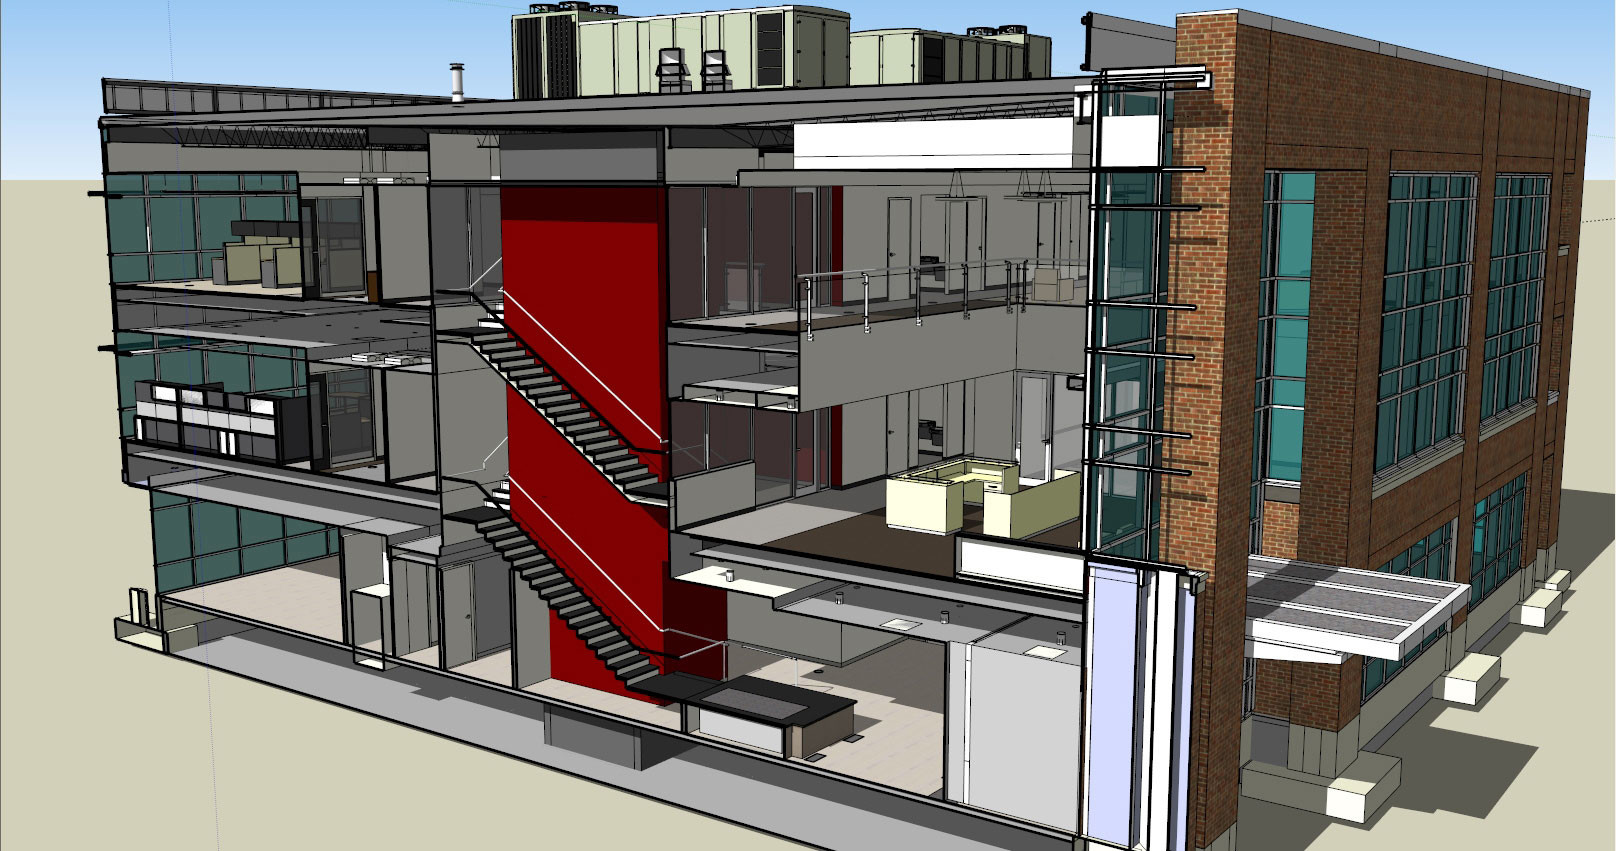 Cutway image of the ATP building created in SketchUp.